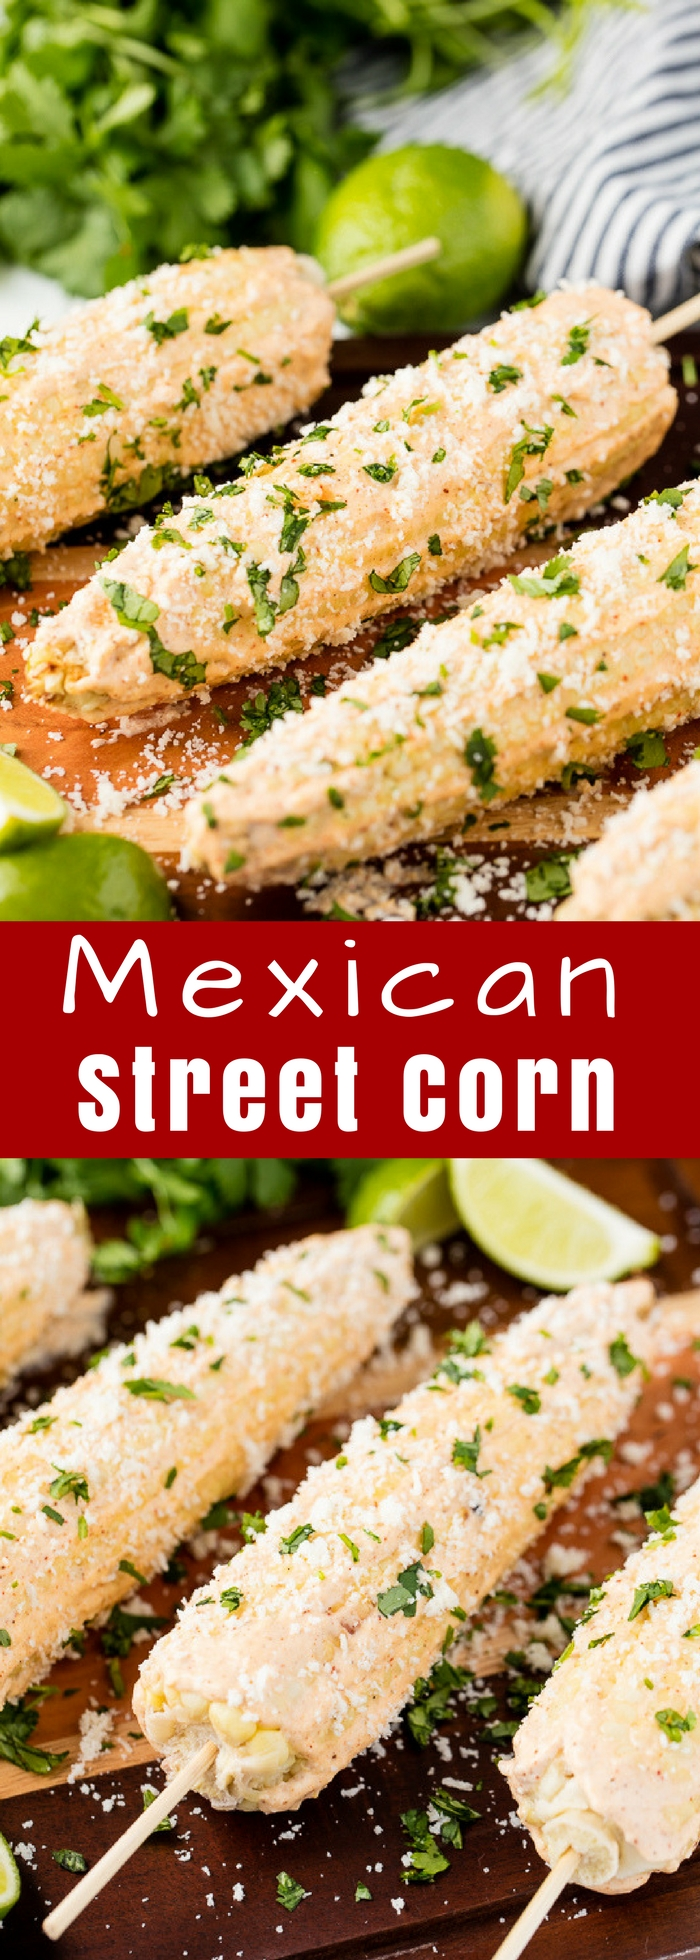 Authentic Mexican Street Corn is just like they serve it from the street carts of Mexico. This is a comfort food corn on the cob dish that just can't be beat.